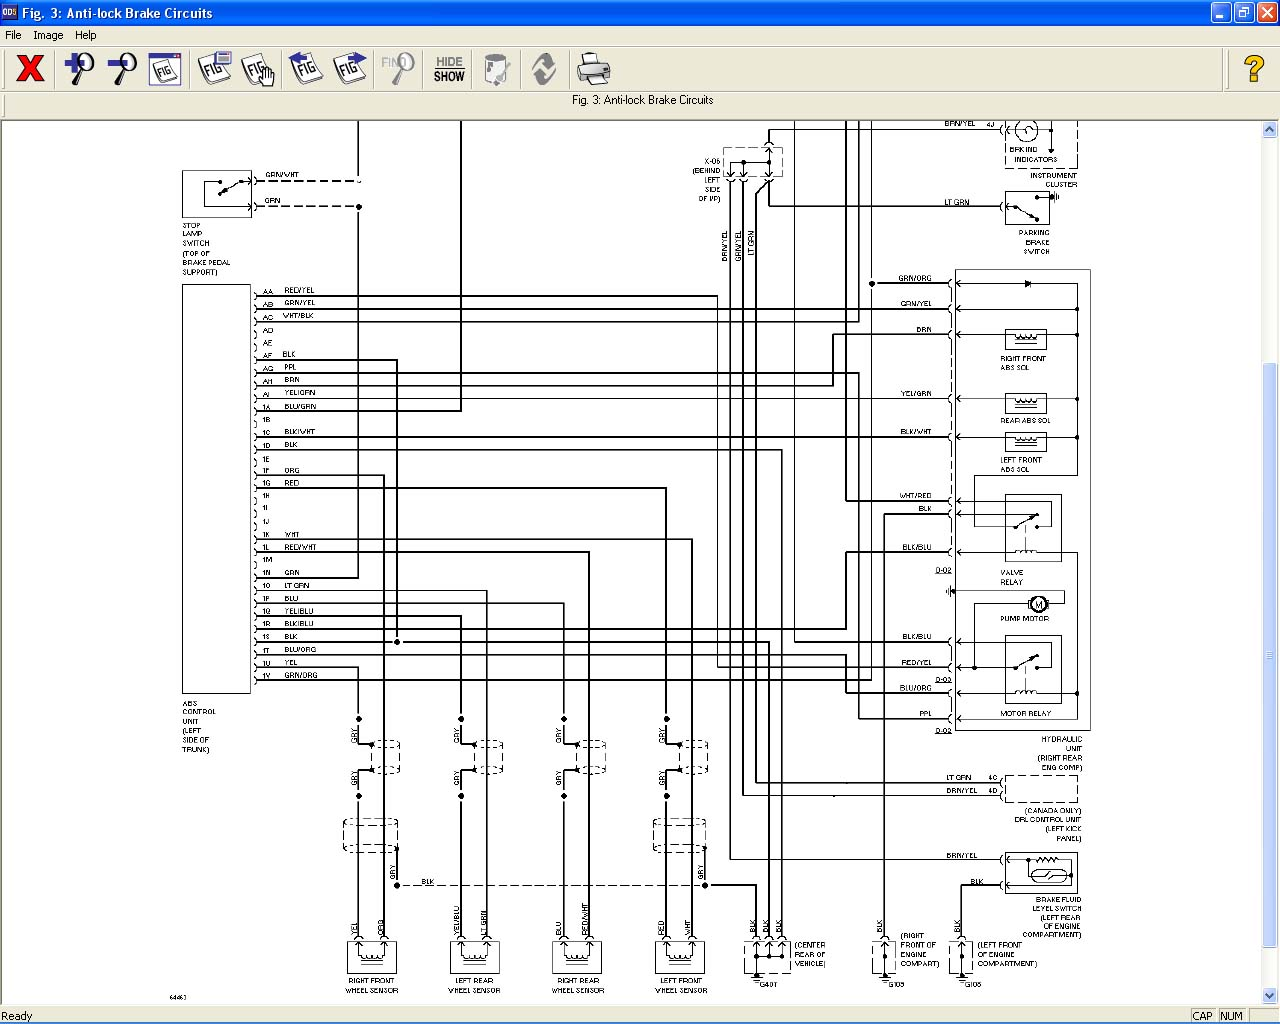 1986 rx7 wiring diagram 93 rx7 wiring diagram 95 abs pump in a 93fd - rx7club.com - mazda rx7 forum